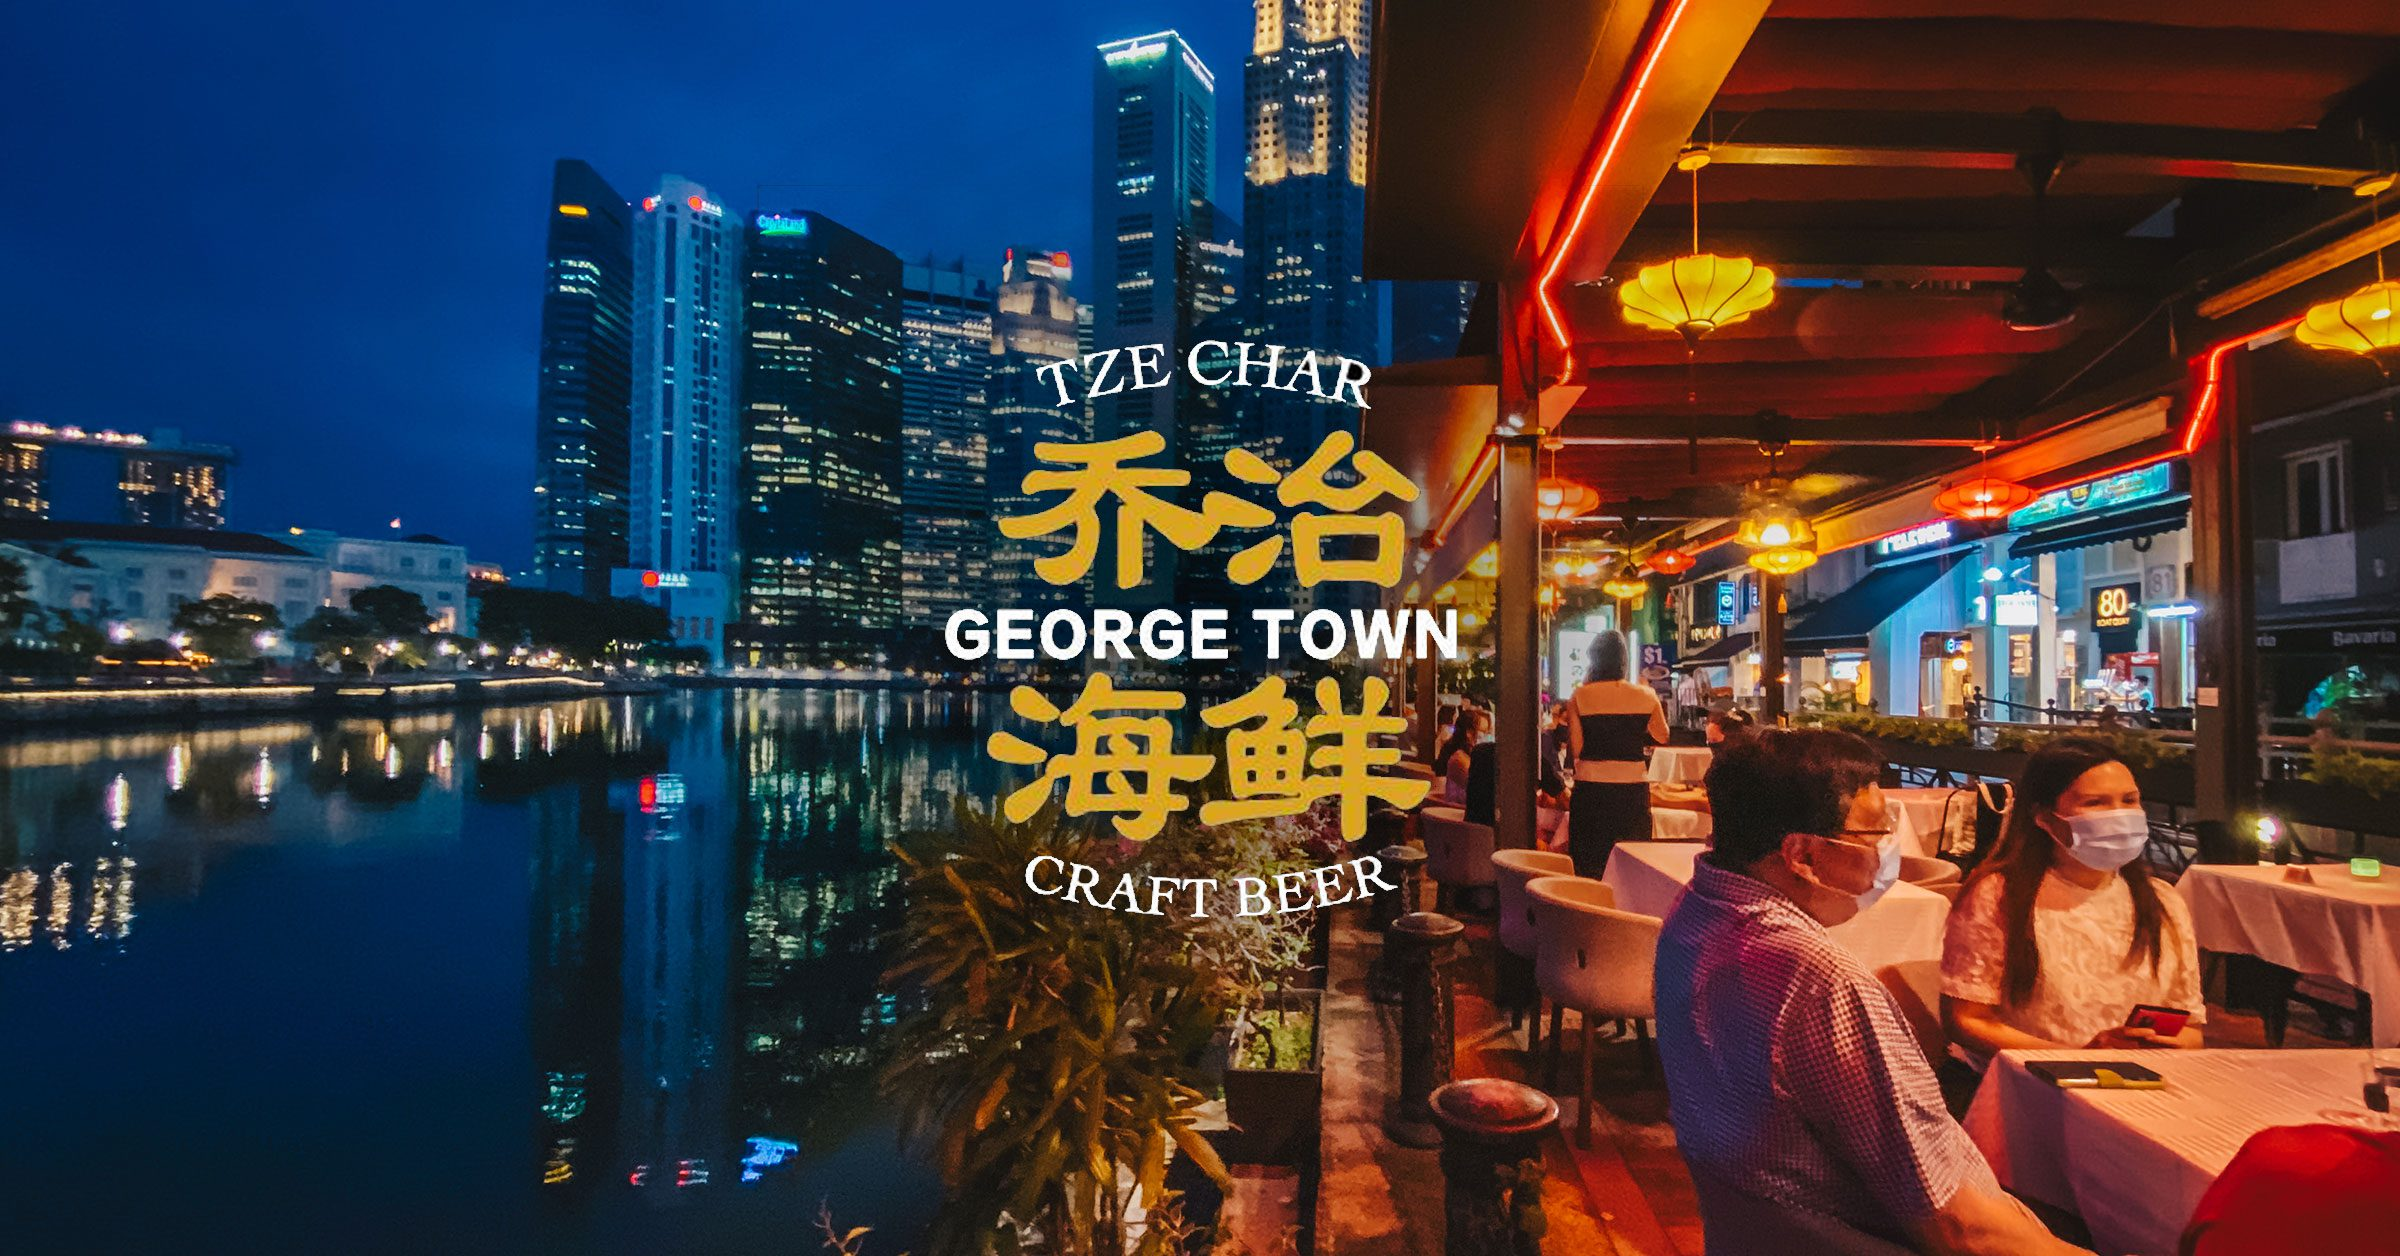 George-Town-Tze-Char-Craft-Beer-Boat-Quay-Singapore-darrenbloggie